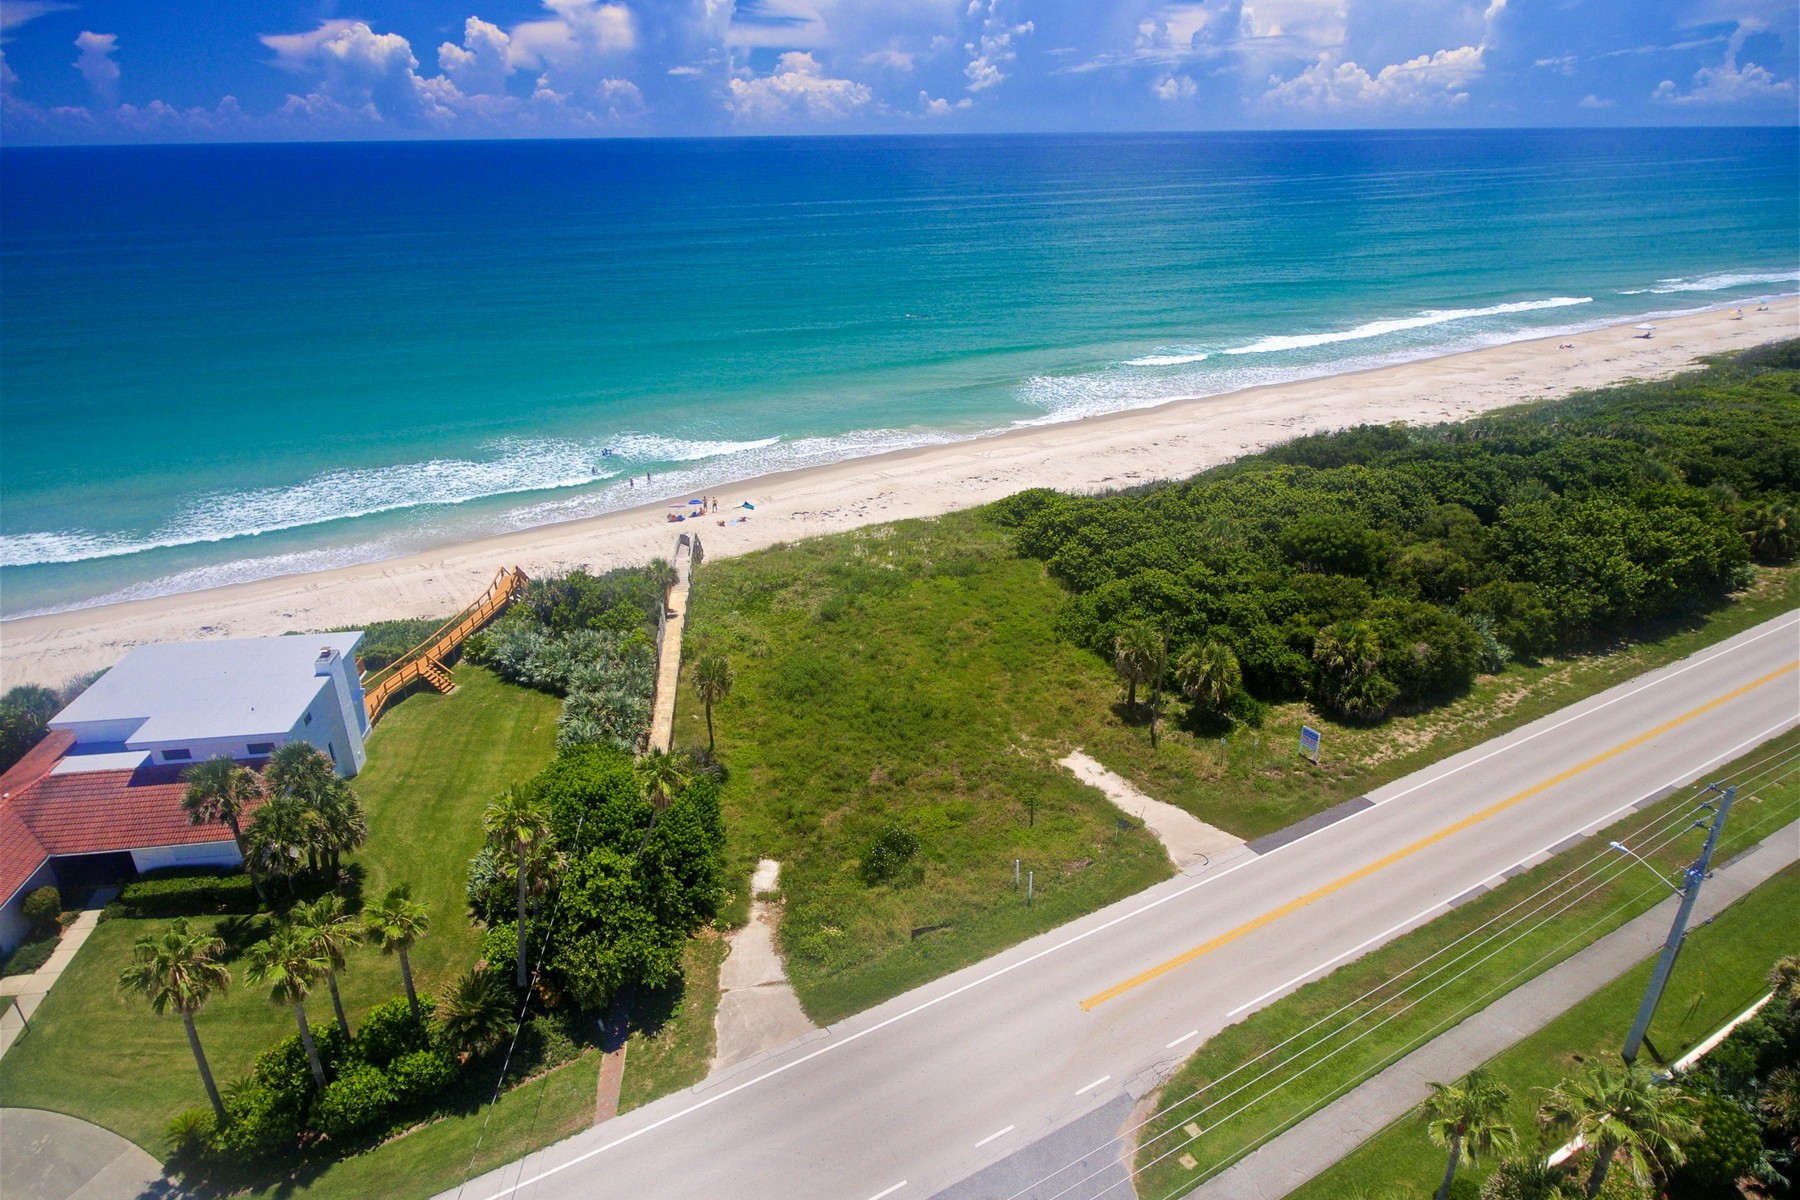 Additional photo for property listing at Great Oceanfront Lot in Premium Location 3315 Highway A1A Melbourne Beach, Florida 32951 United States